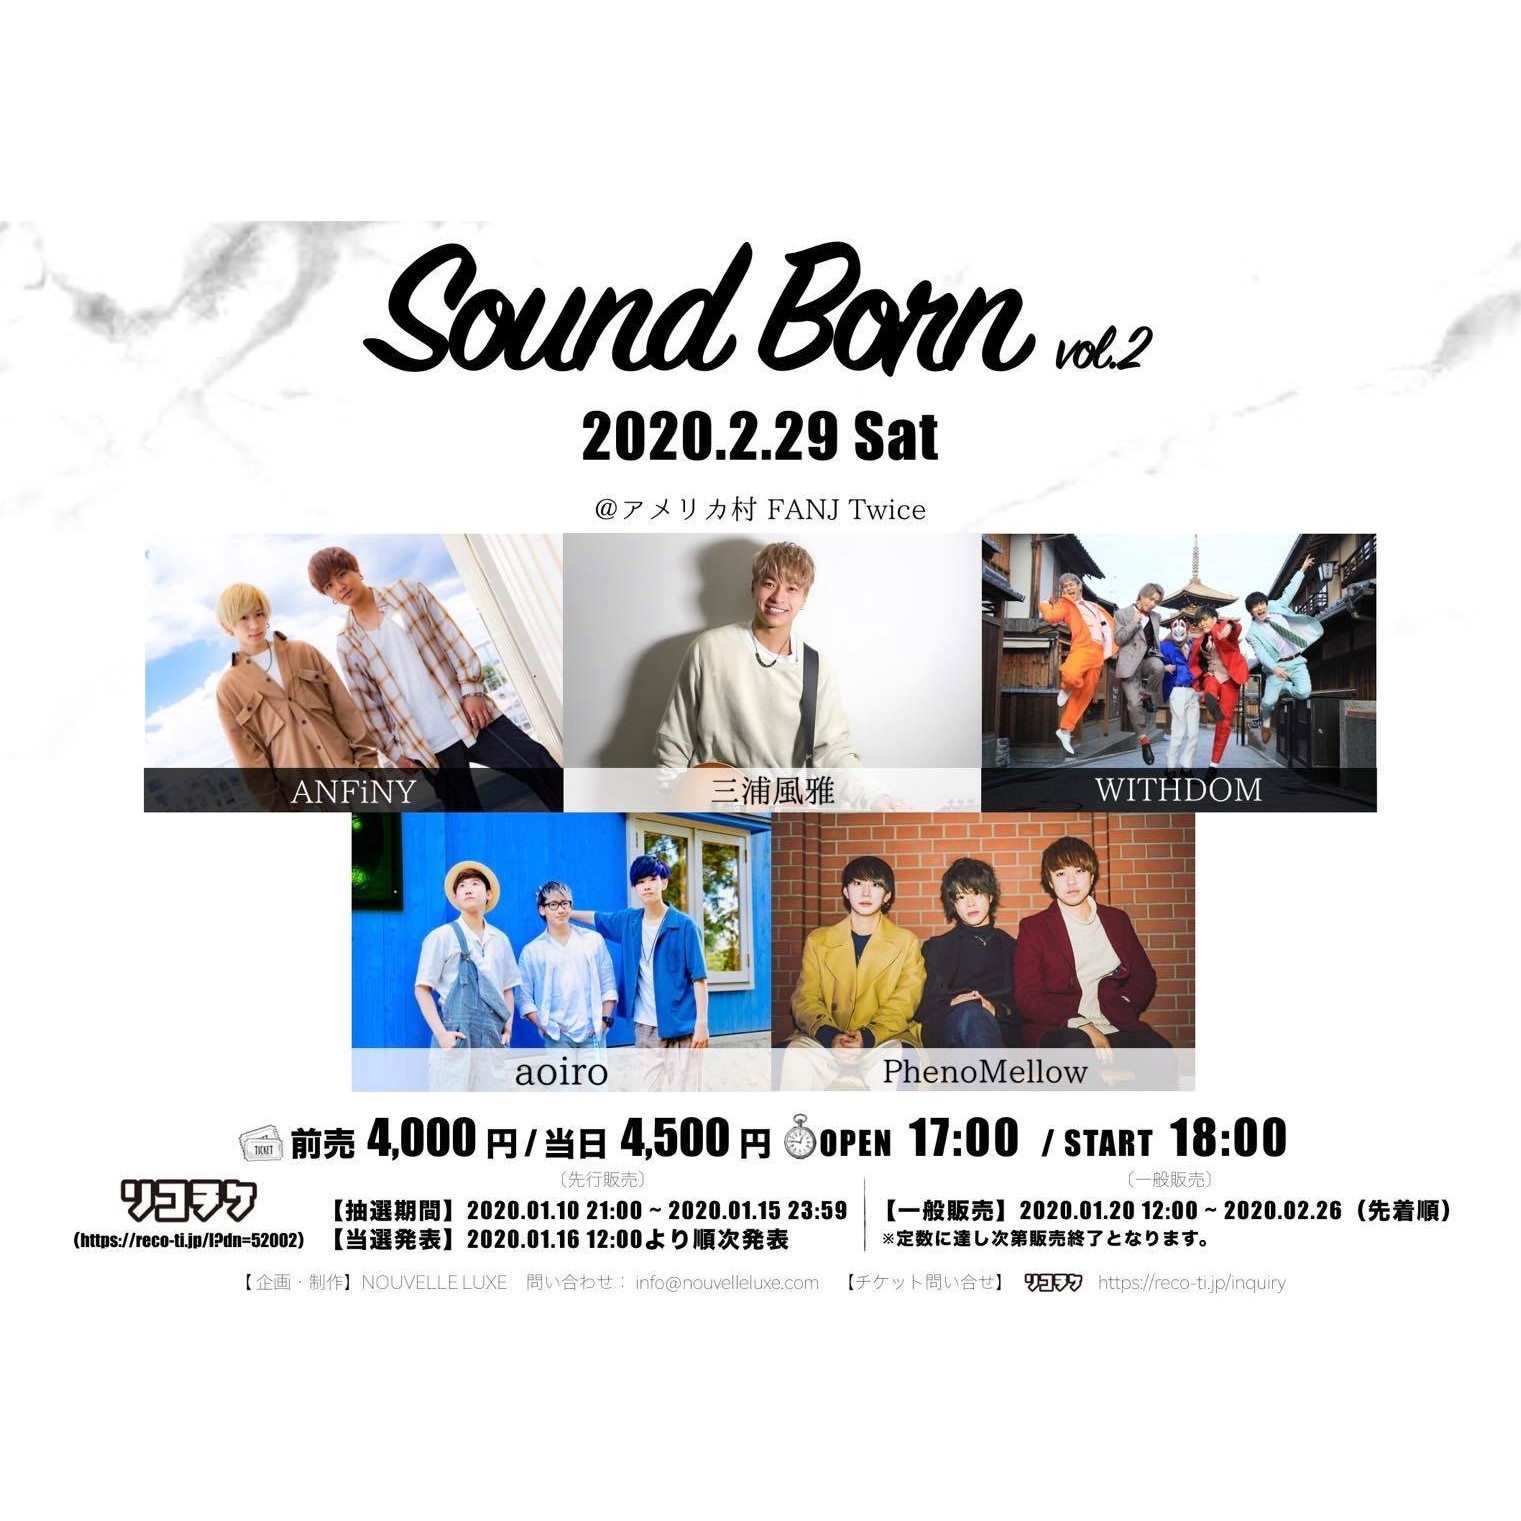 Sound Born vol.2(先行抽選)